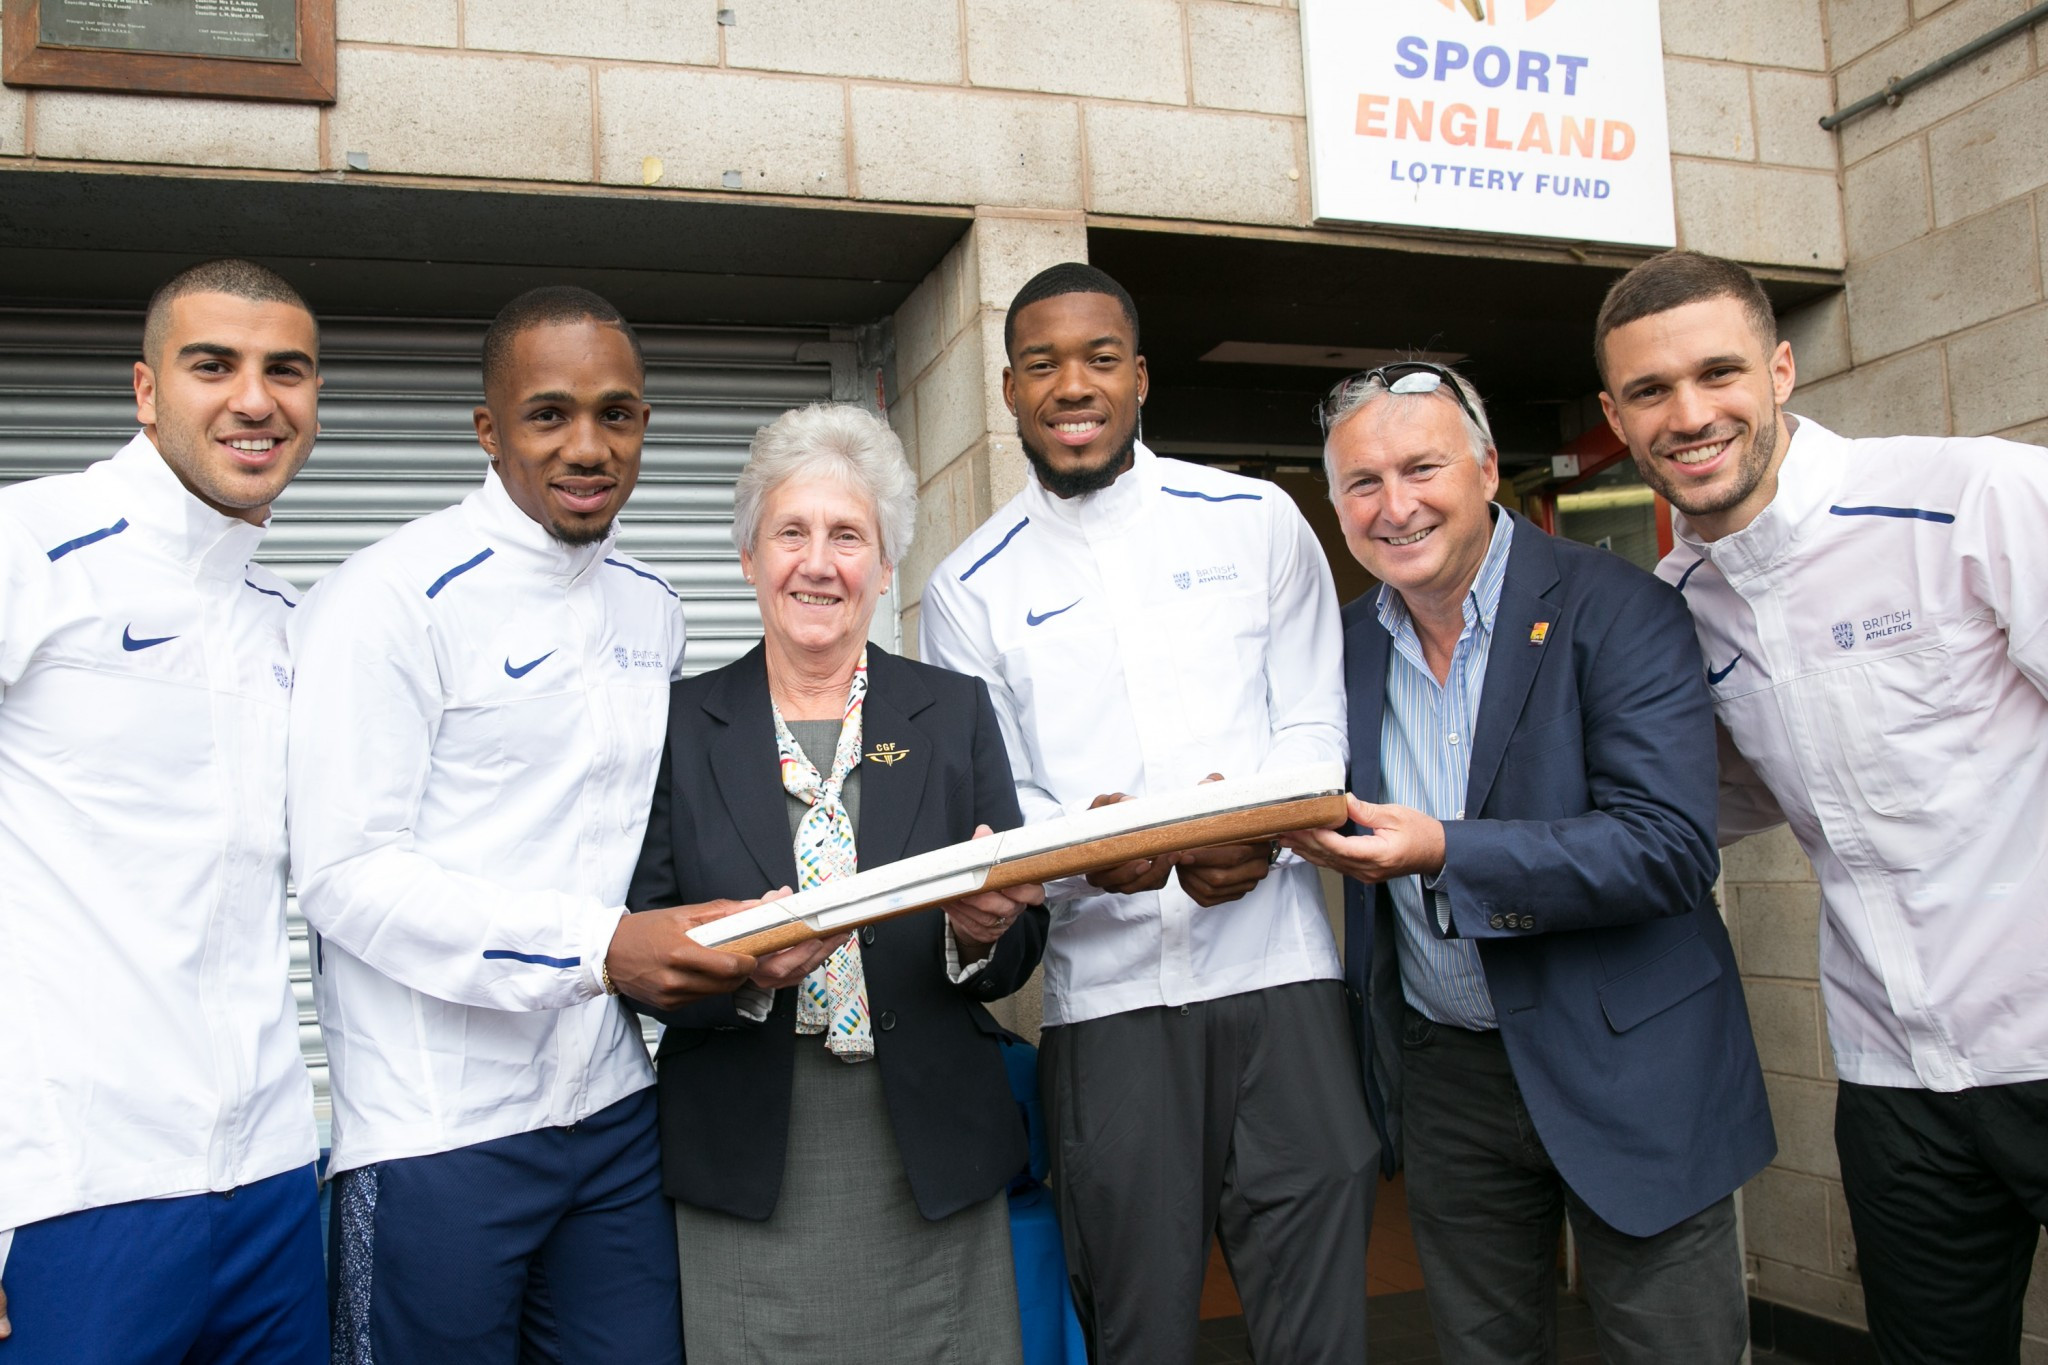 Queen's Baton Relay passes through 2022 Commonwealth Games bidding city Birmingham